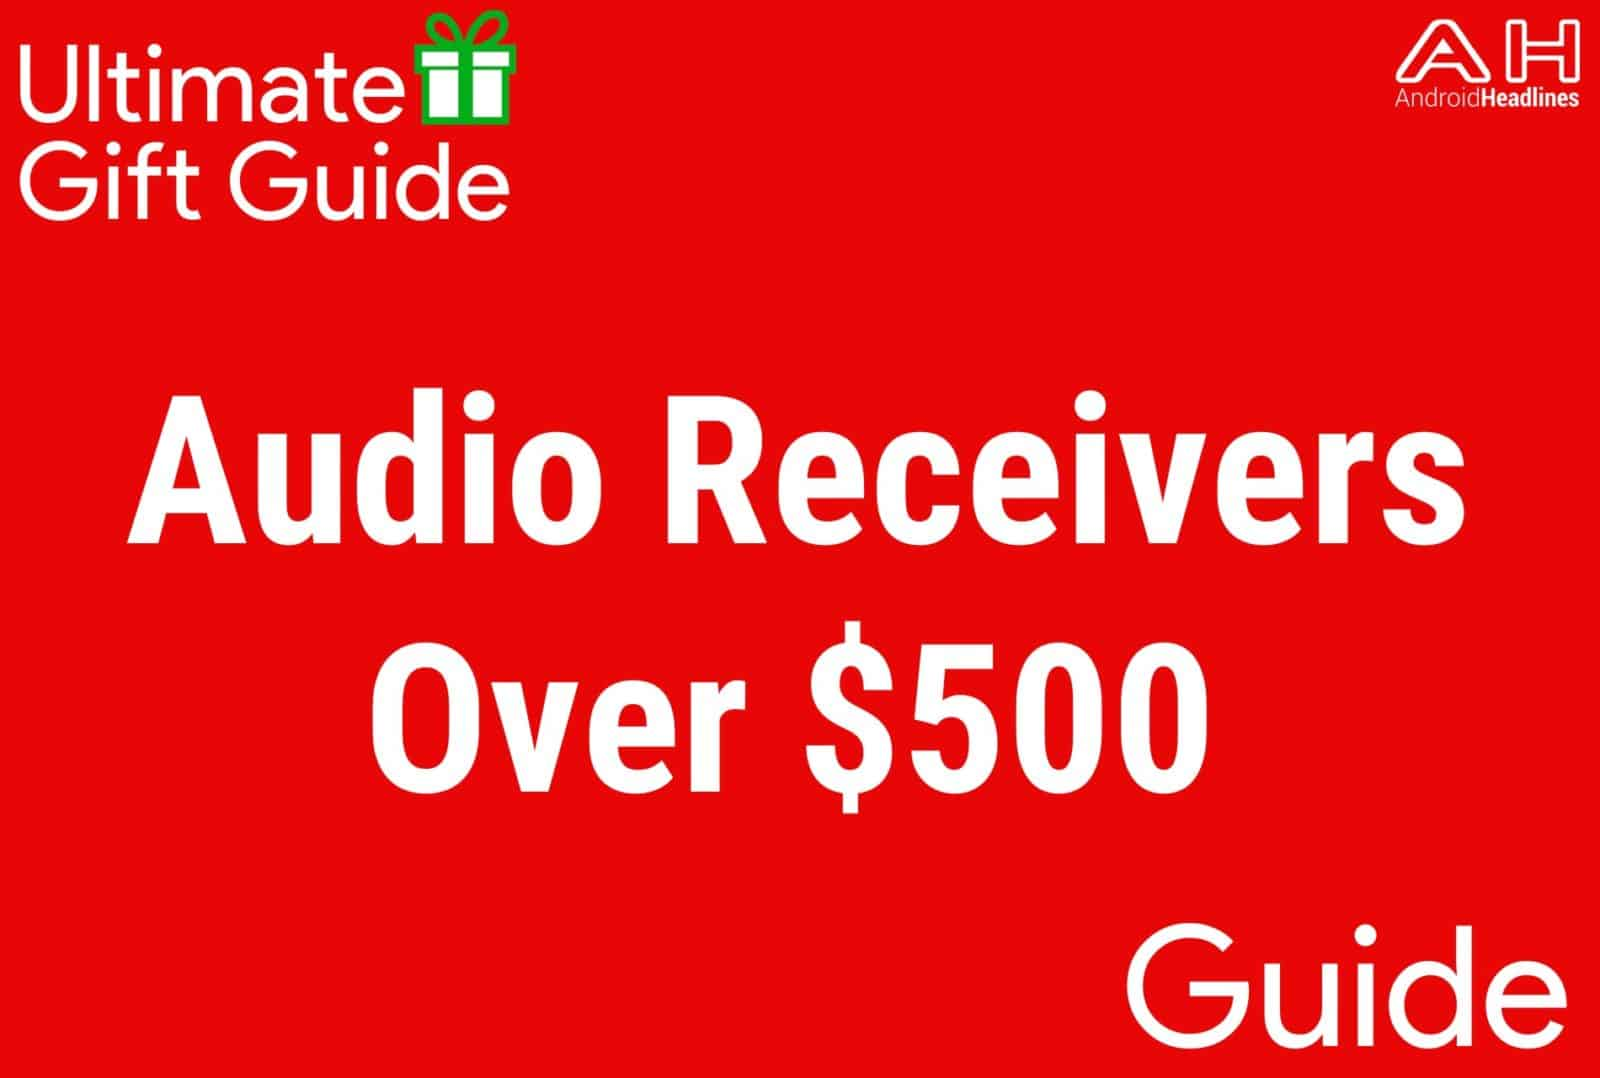 Audio Receivers Over $500 - Gift Guide 2015-2016